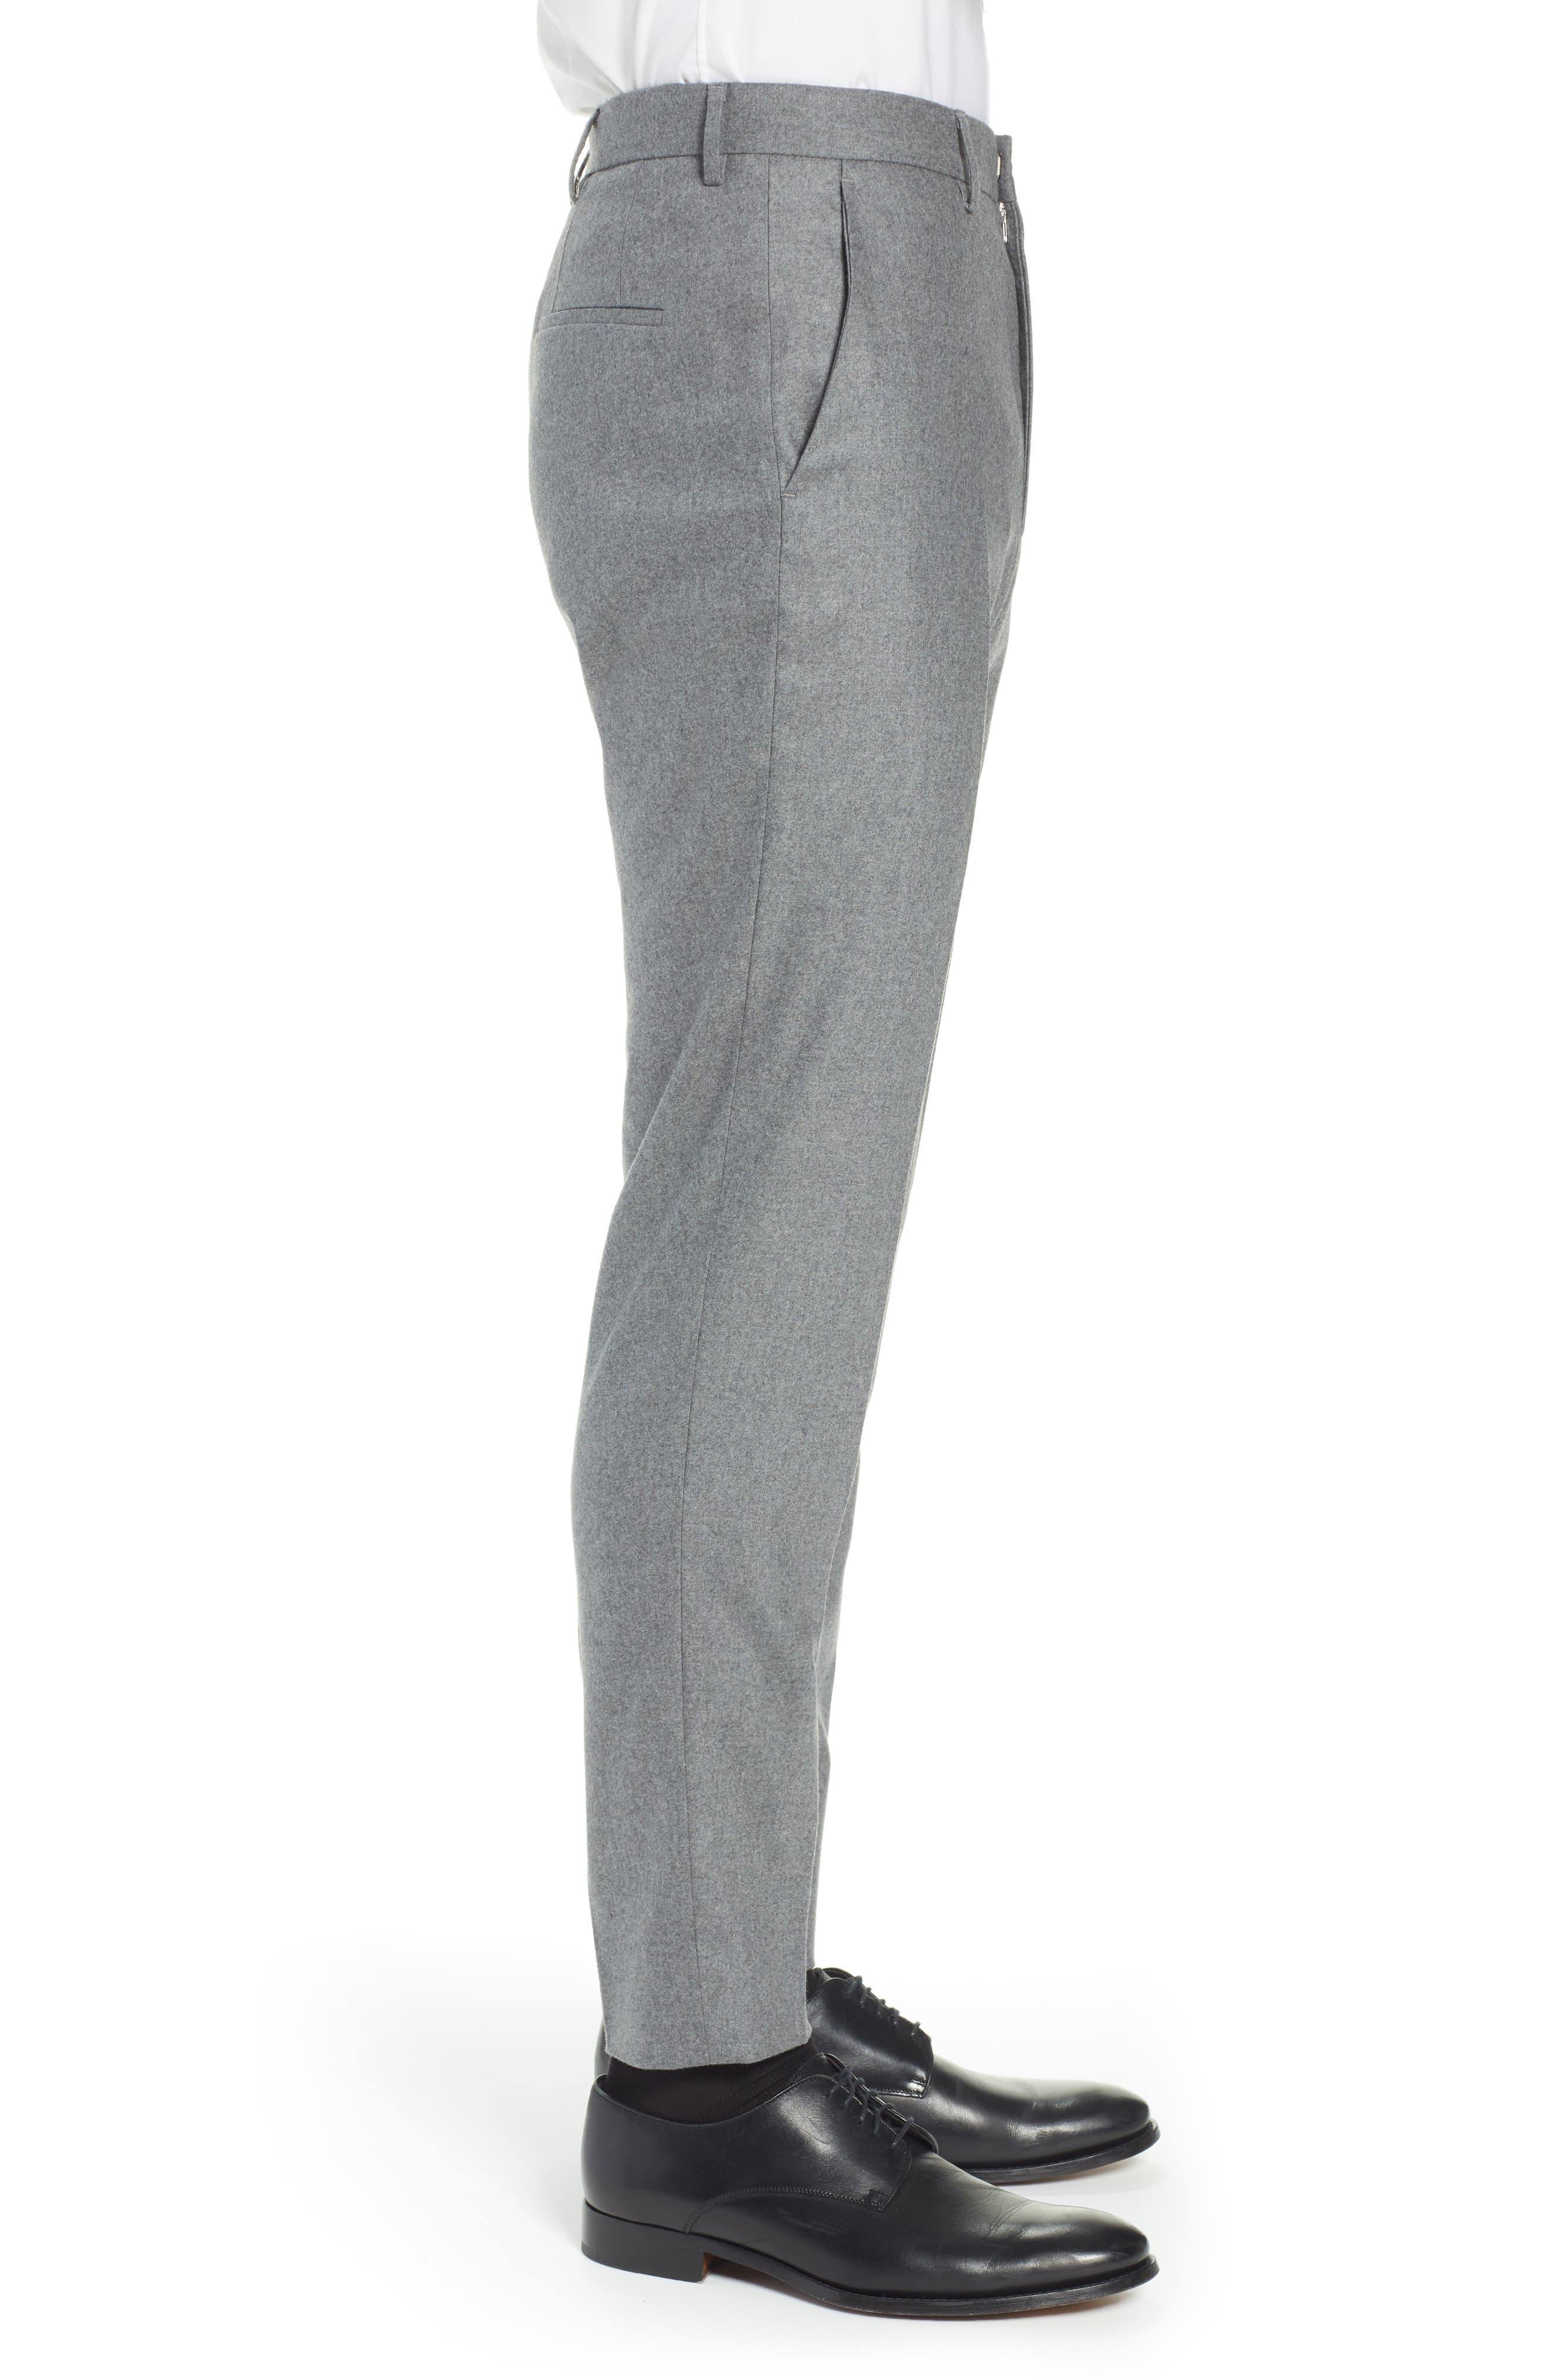 Pirko Flat Front Solid Stretch Wool Trousers,                             Alternate thumbnail 3, color,                             MEDIUM GREY